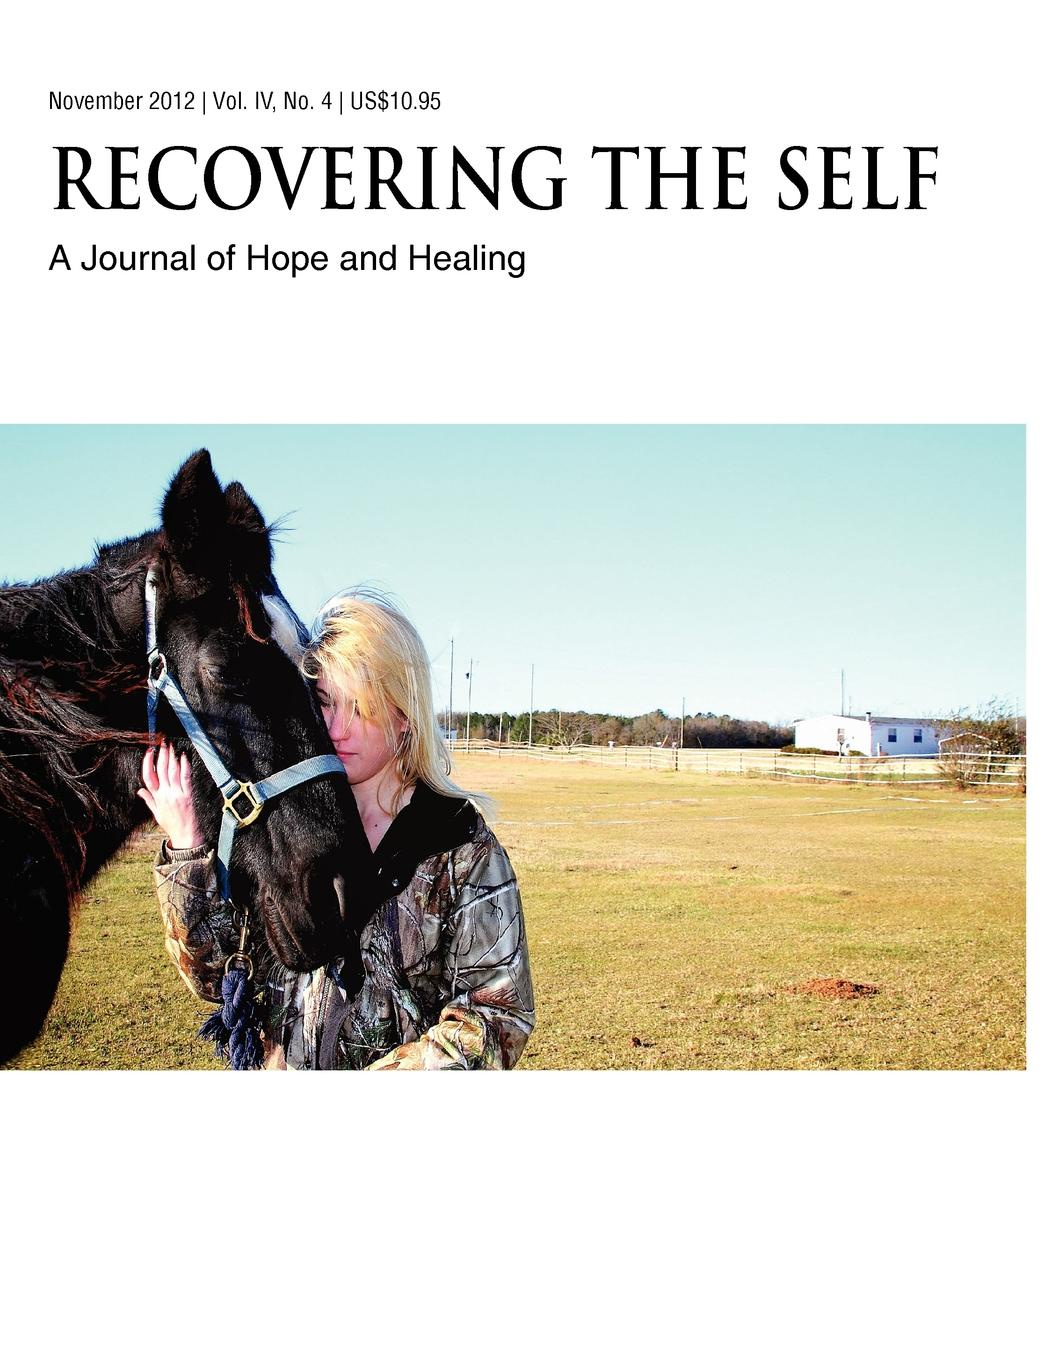 Bernie S. Siegel, Trisha Faye Recovering the Self. A Journal of Hope and Healing (Vol. IV, No. 4) -- Animals and Healing recovering the self